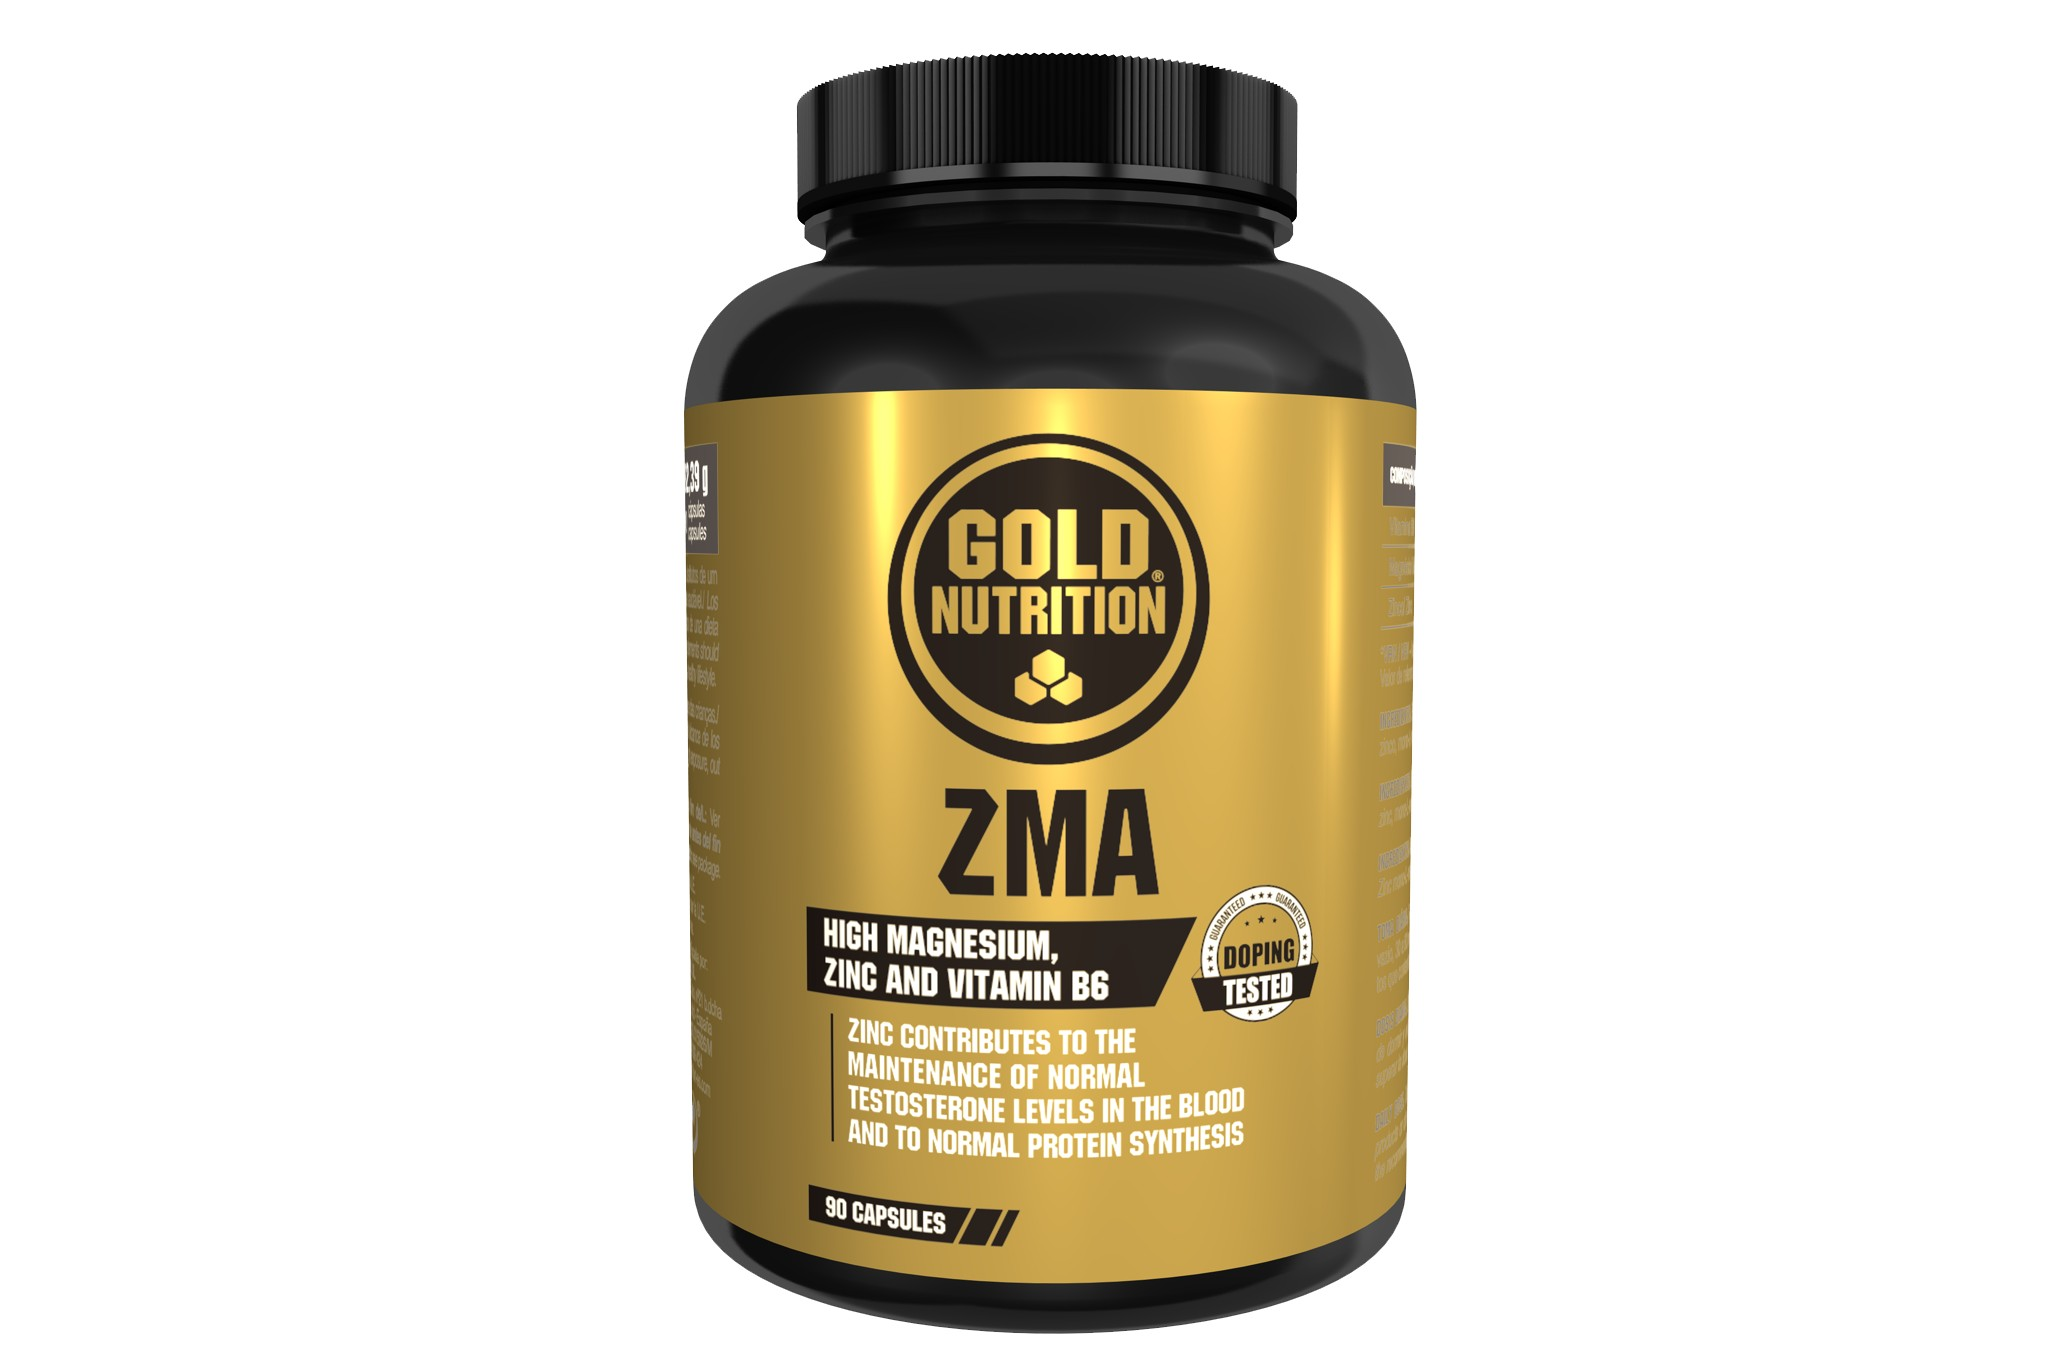 zma x 90cps - goldnutrition